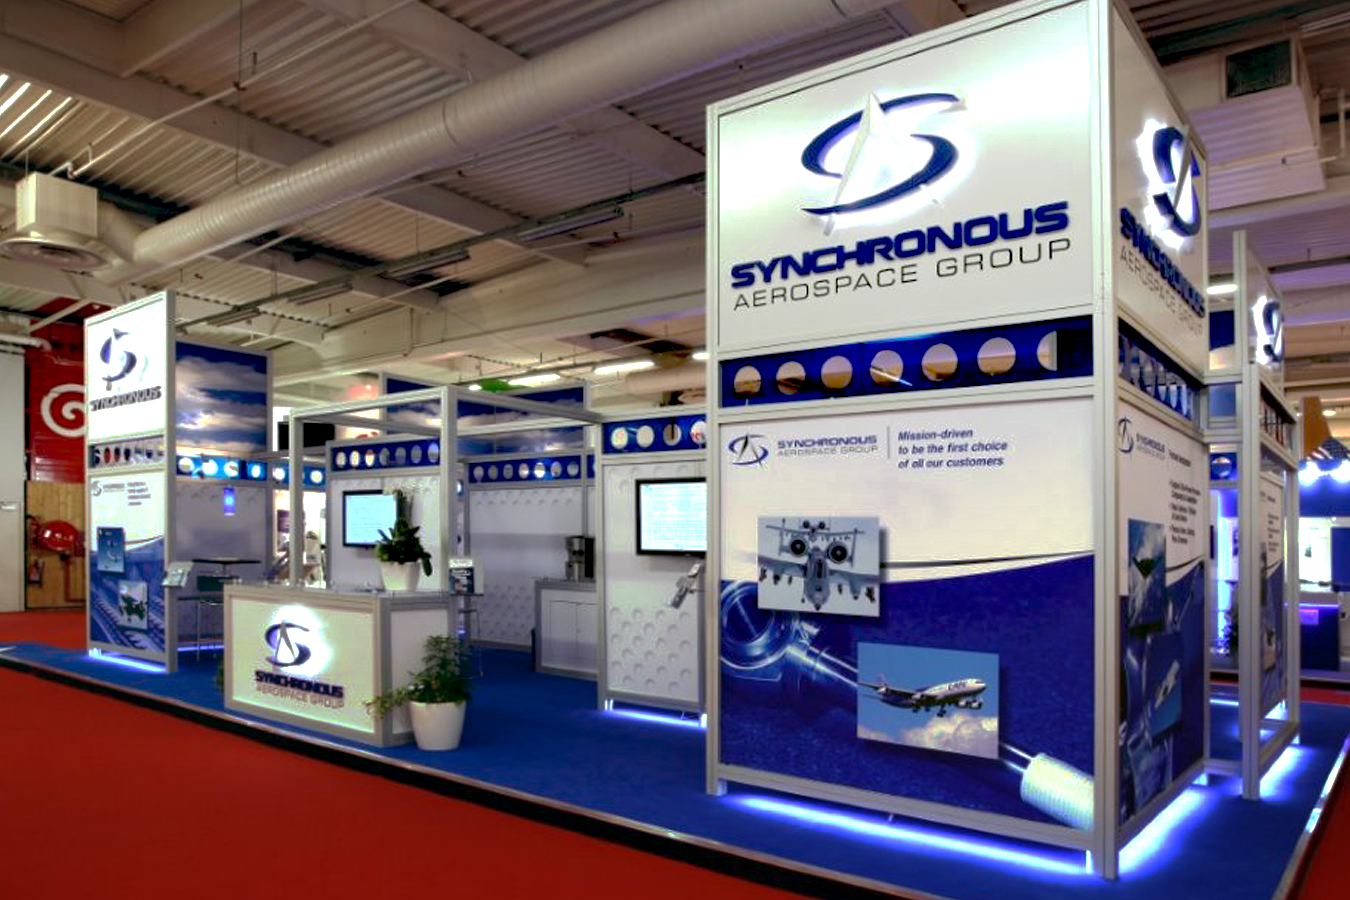 Synchronous Aerospace Group Booth